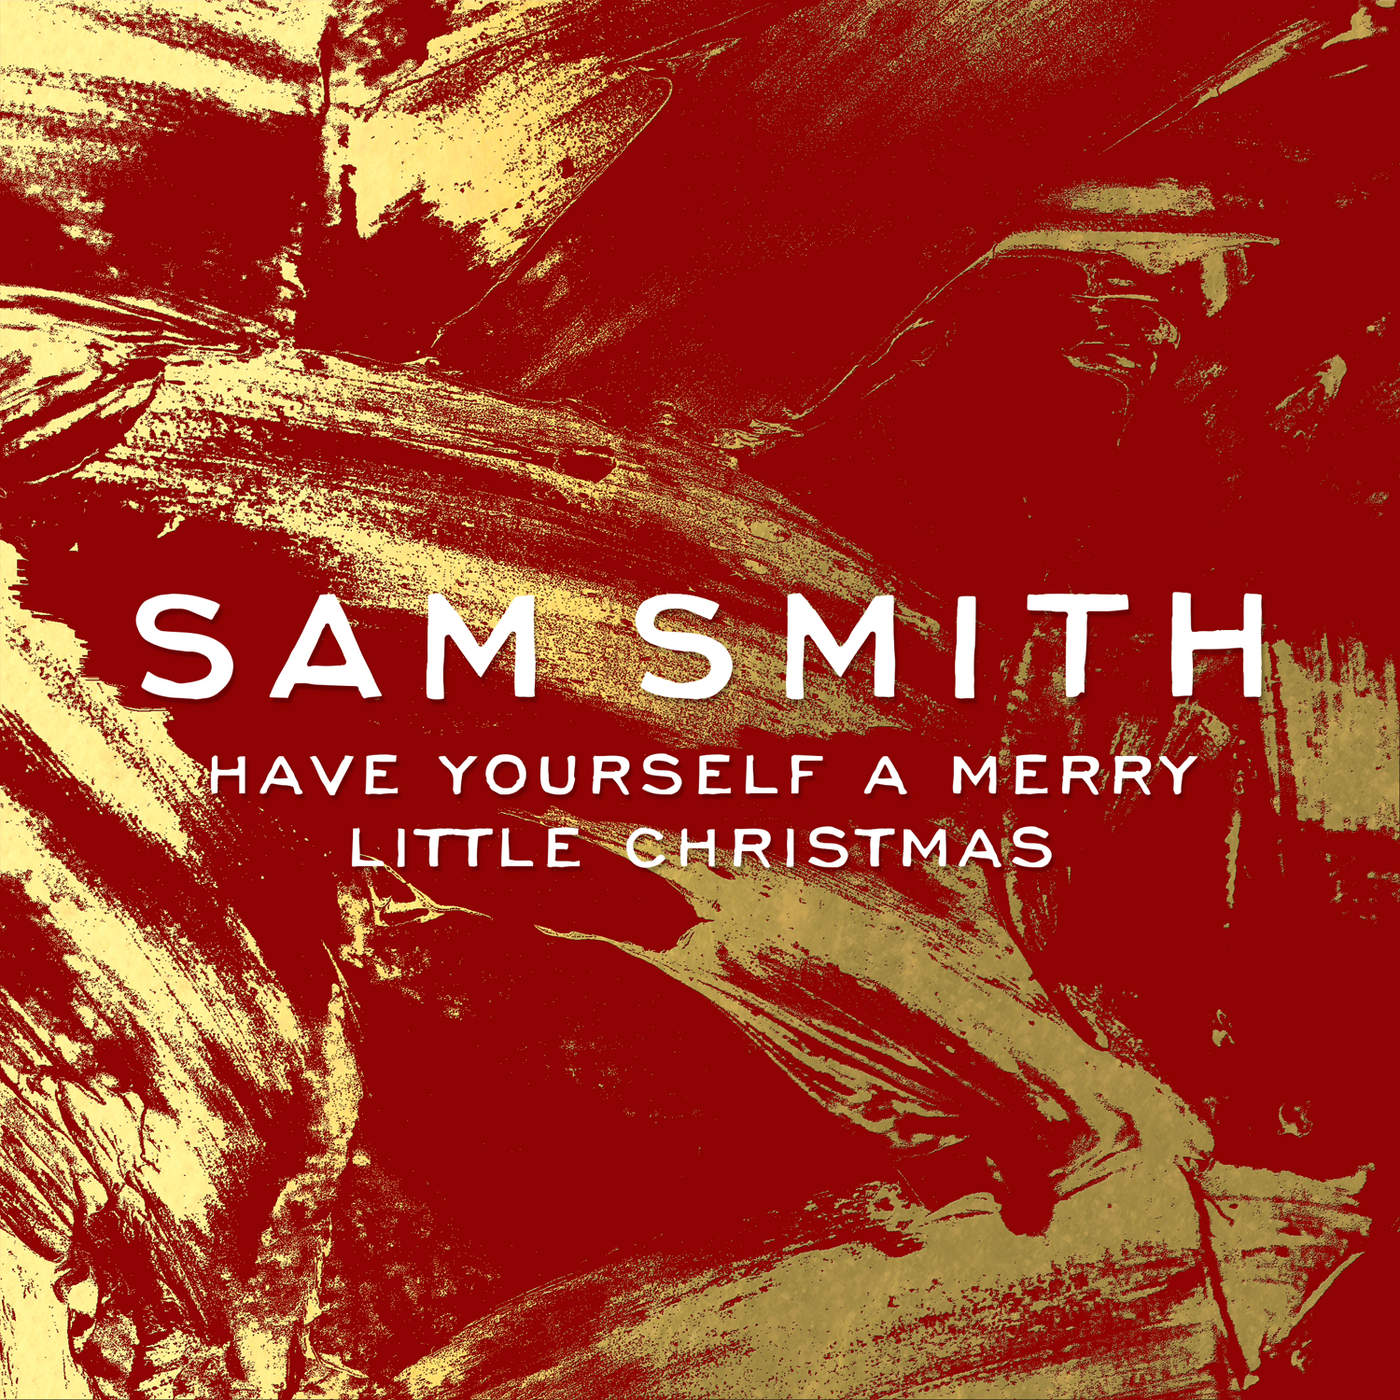 Sam Smith - Have Yourself a Merry Little Christmas - Single